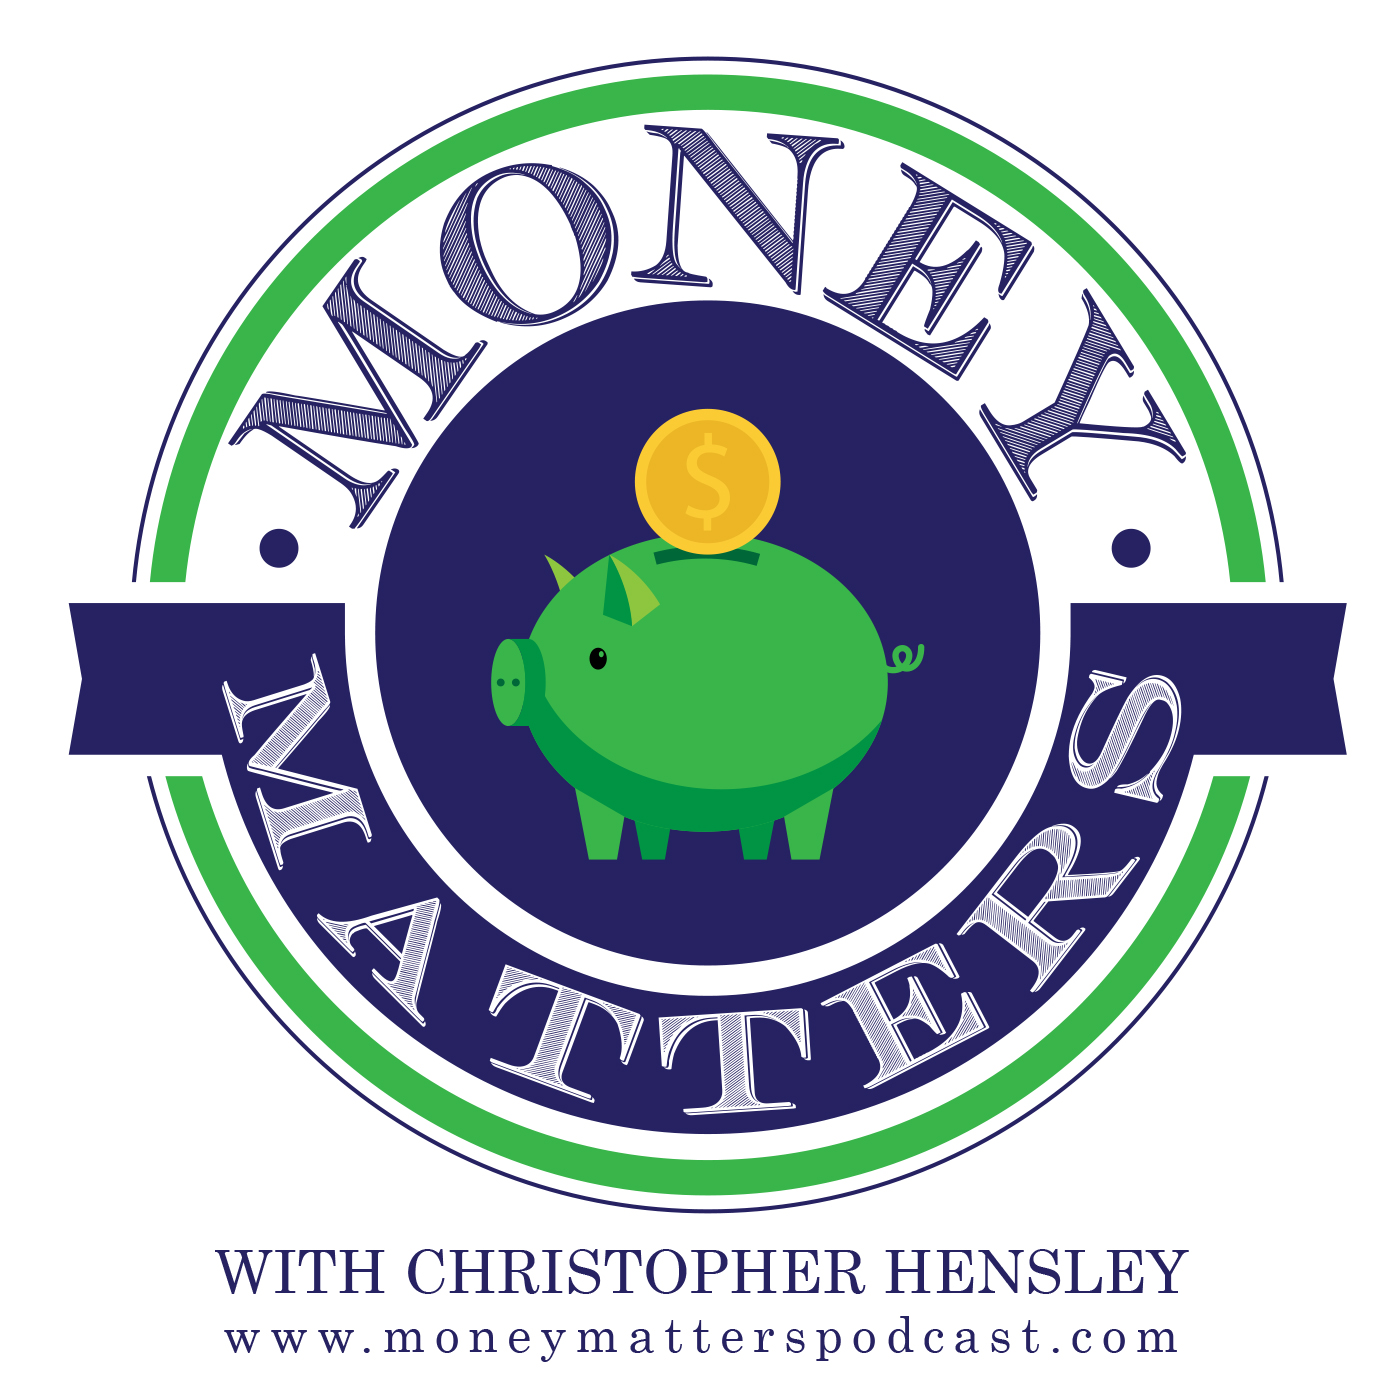 The Houston Midtown Chapter of The Society for Financial Awareness Presents MONEY MATTERS with Christopher Hensley show art